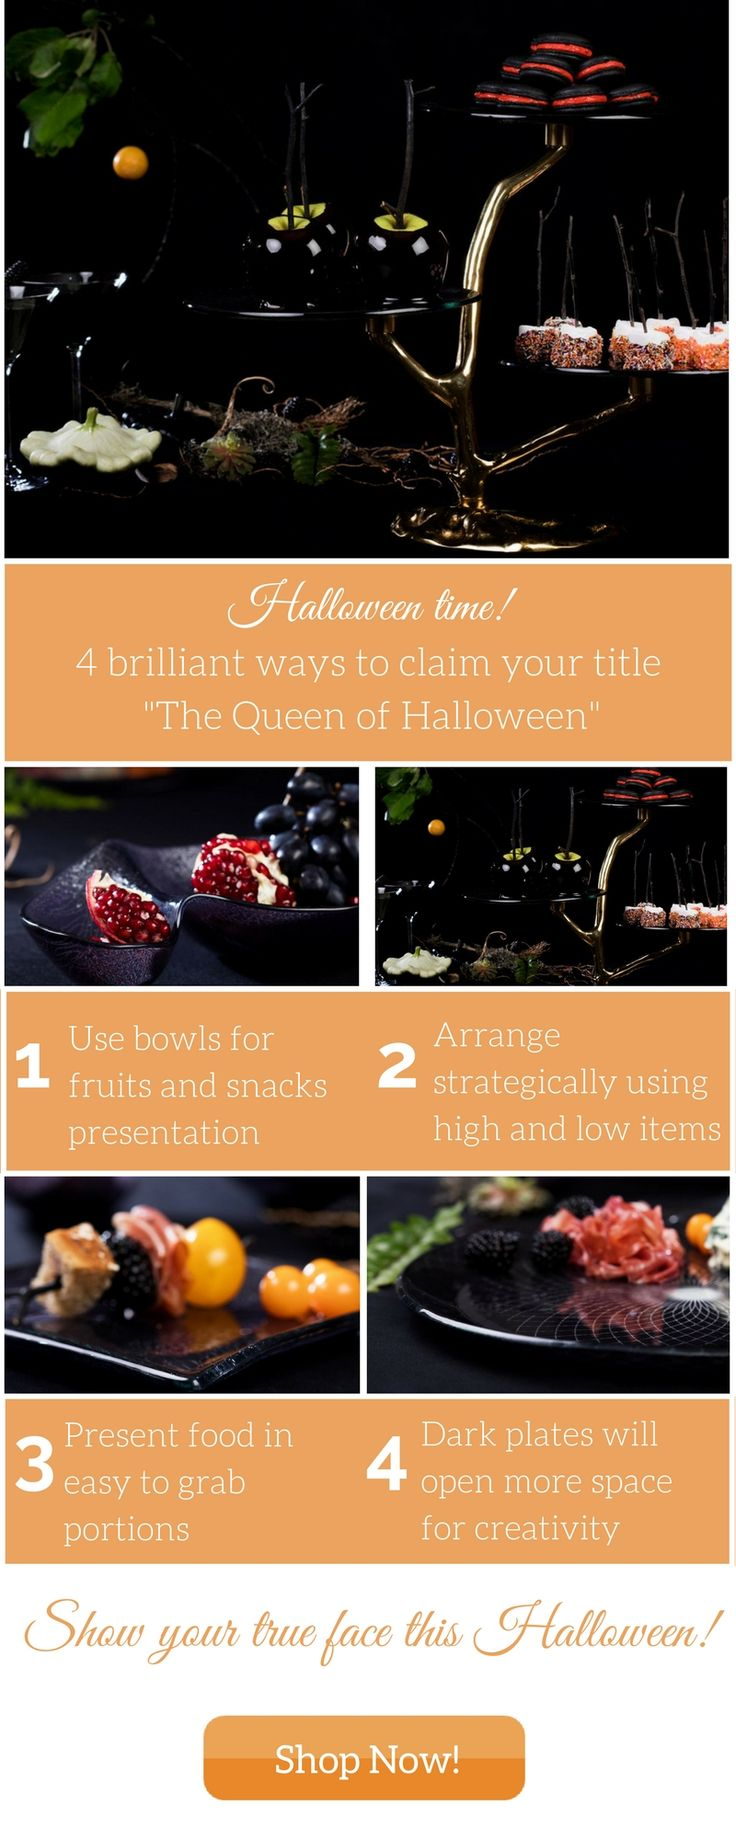 Be The Queen of Halloween this year and throw the most chic cocktail party for the event! Classy guests only!  Organize a mysteriously elegant table setting using designer items presenting your choice of cocktail food and drinks.  Halloween themed events have never been so classy!  Chose from designer collection of luxury dinnerware, special bowls and high tea stand for more drama!  Get inspired today! It's only one day of the year to be so scarily fantastic!